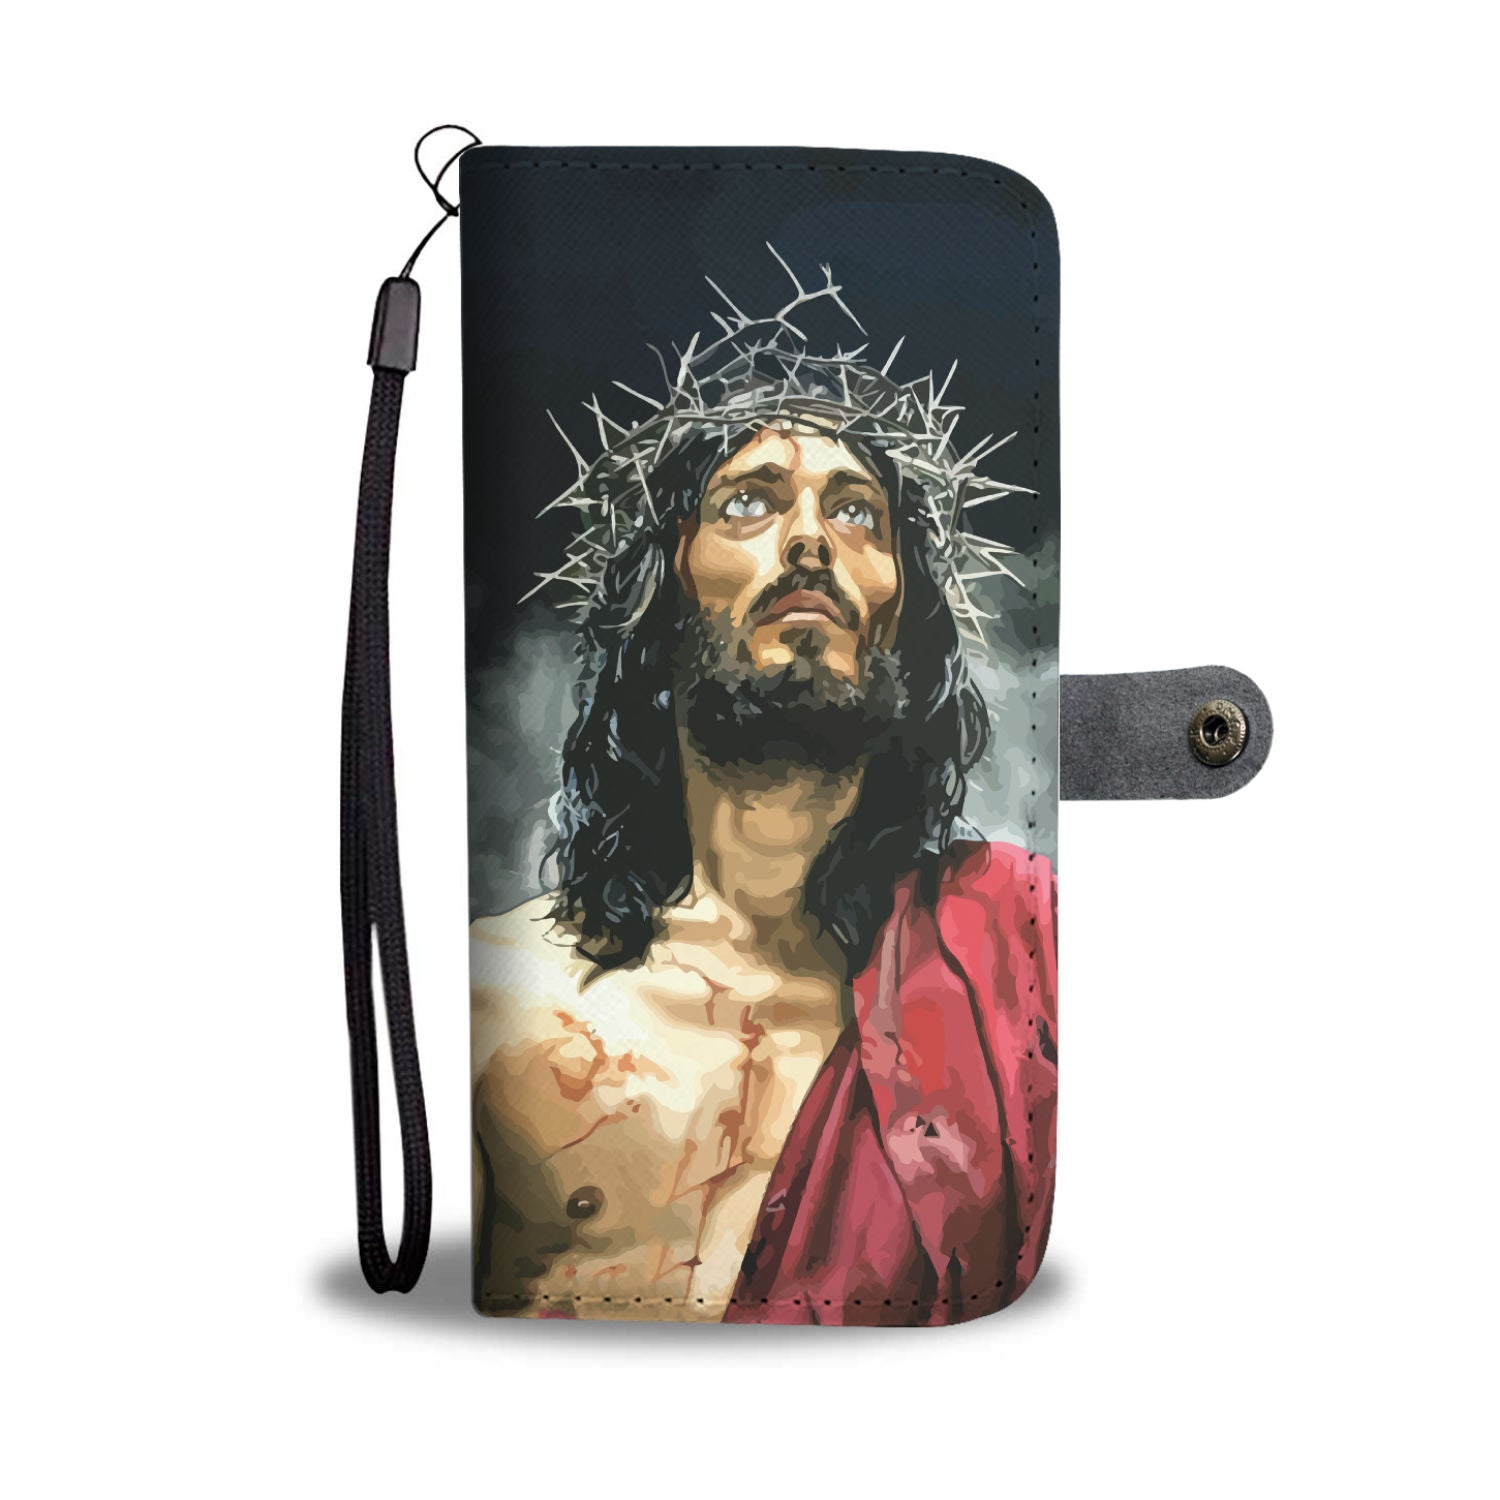 VIRA Awesome Leather-like Wallet Case For Jesus Christ Lovers